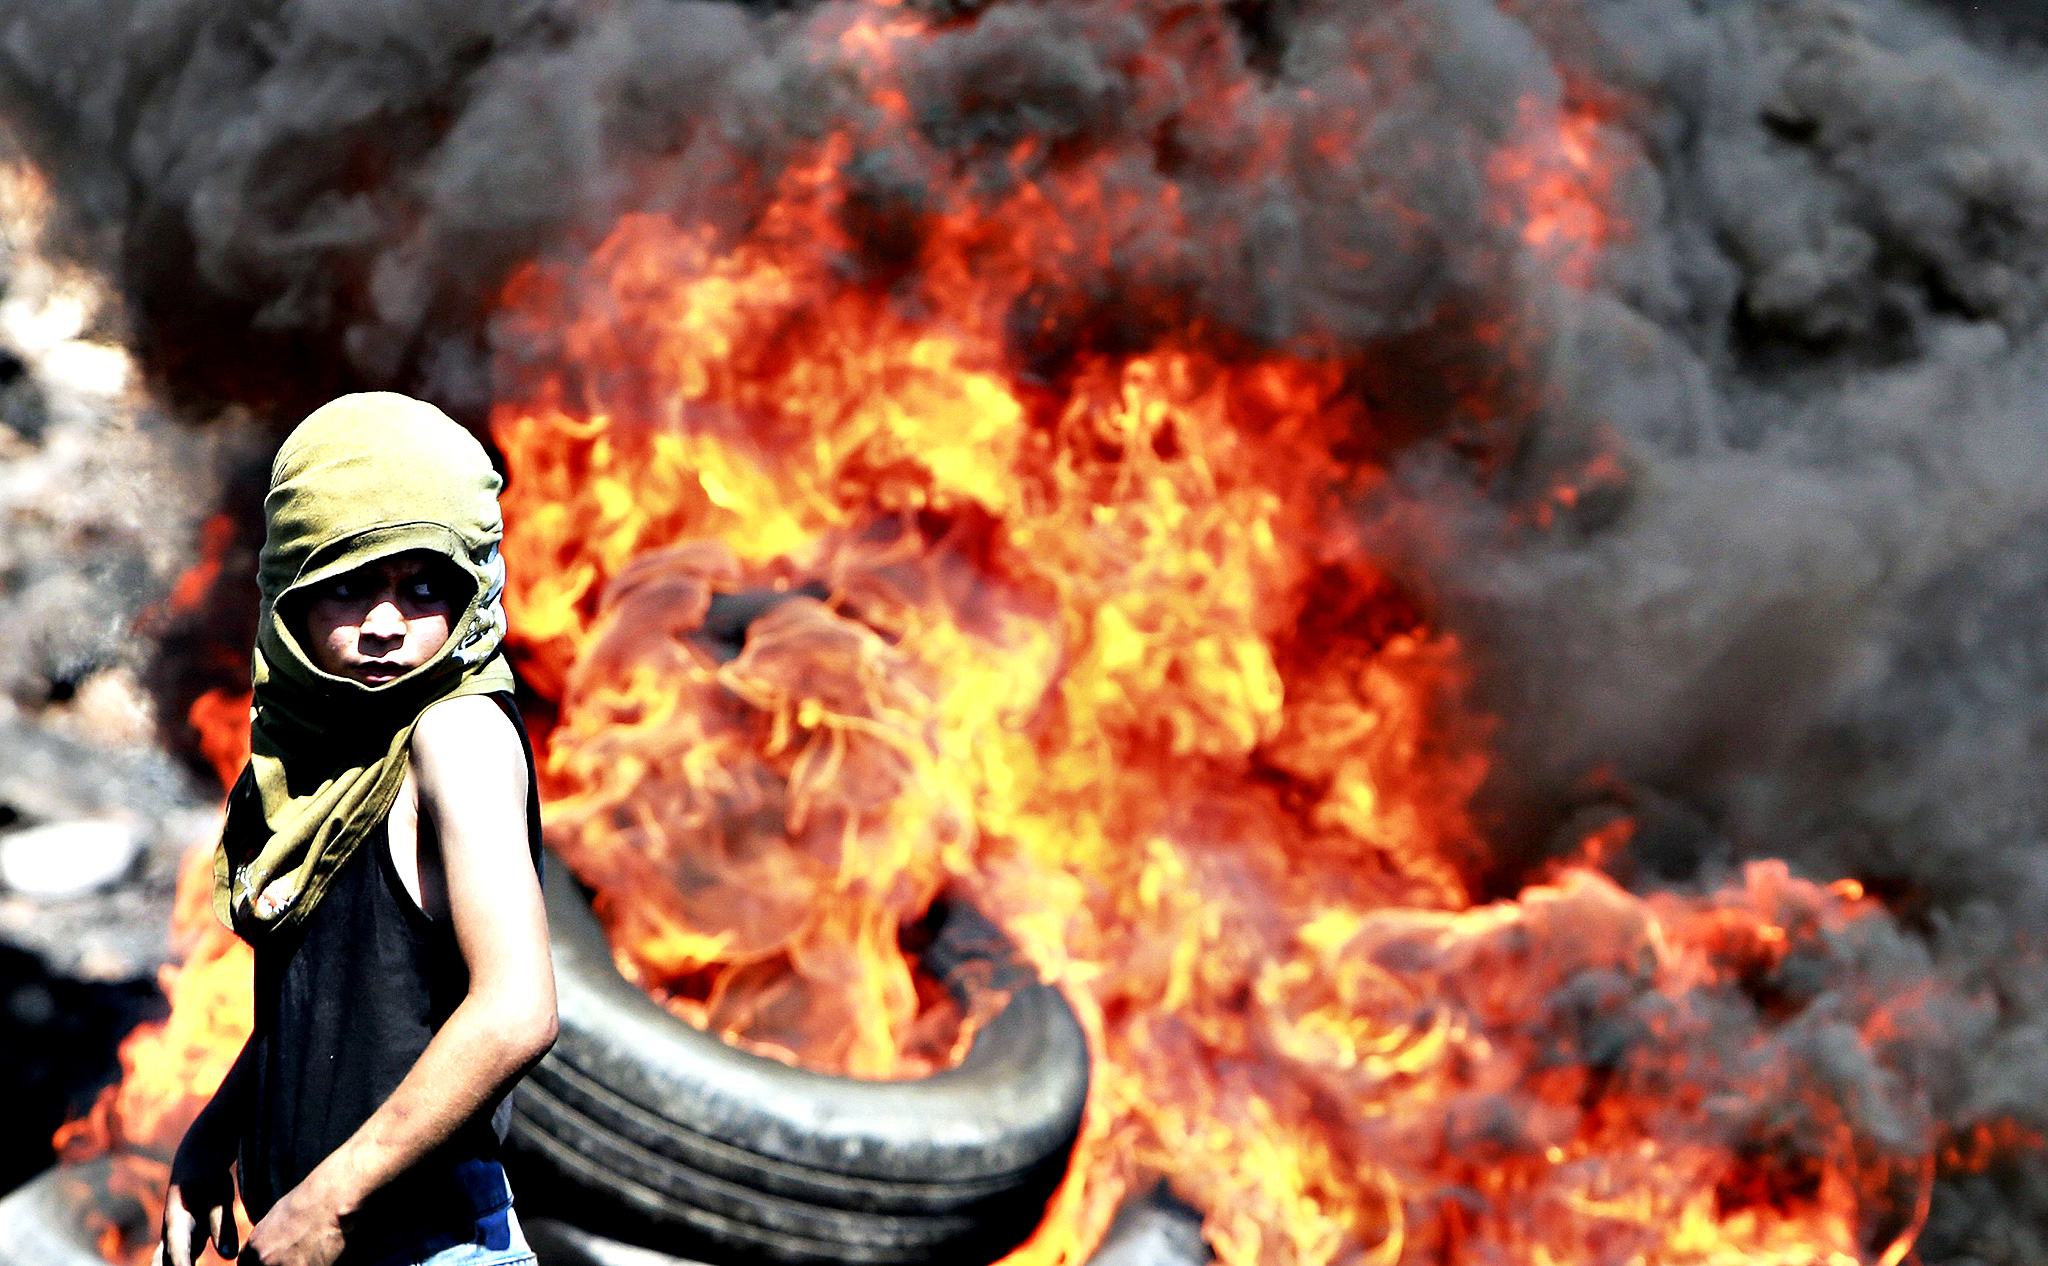 A Palestinian boy looks on near burning tyres during cashes with Israeli soldiers following a protest against the near-by Jewish settlement of Qadomem, in West Bank...A Palestinian boy looks on near burning tyres during cashes with Israeli soldiers following a protest against the near-by Jewish settlement of Qadomem, in the West Bank village of Kofr Qadom near Nablus September 19, 2014.